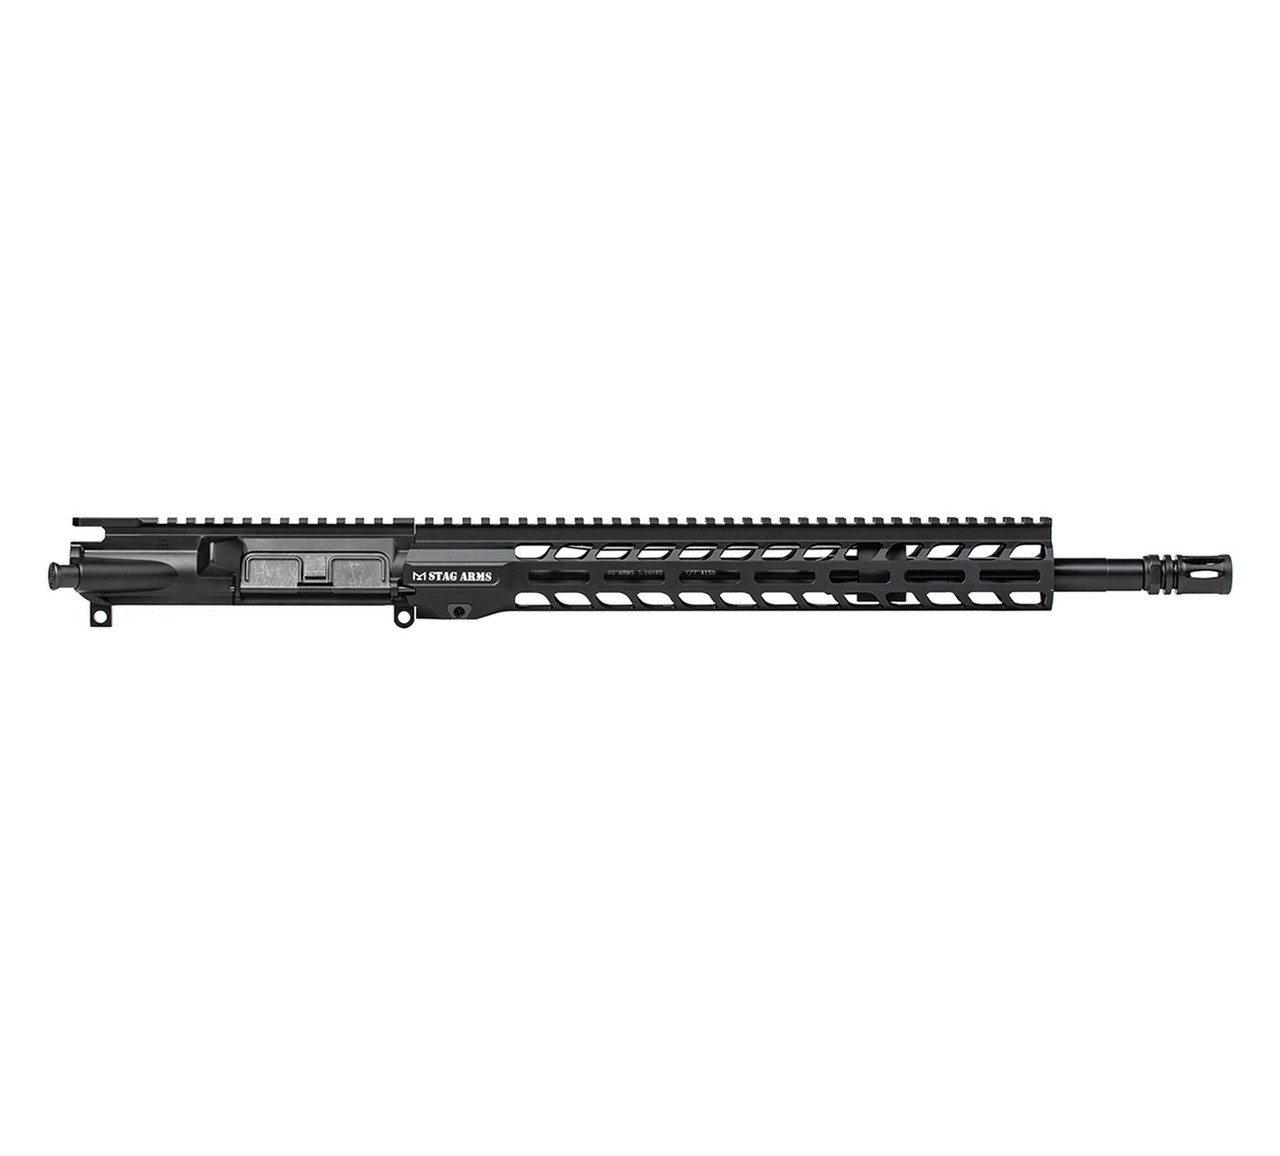 Stag Arms Stag 15 16in COMPLETE Tactical Upper CALIFORNIA LEGAL - .223/5.56